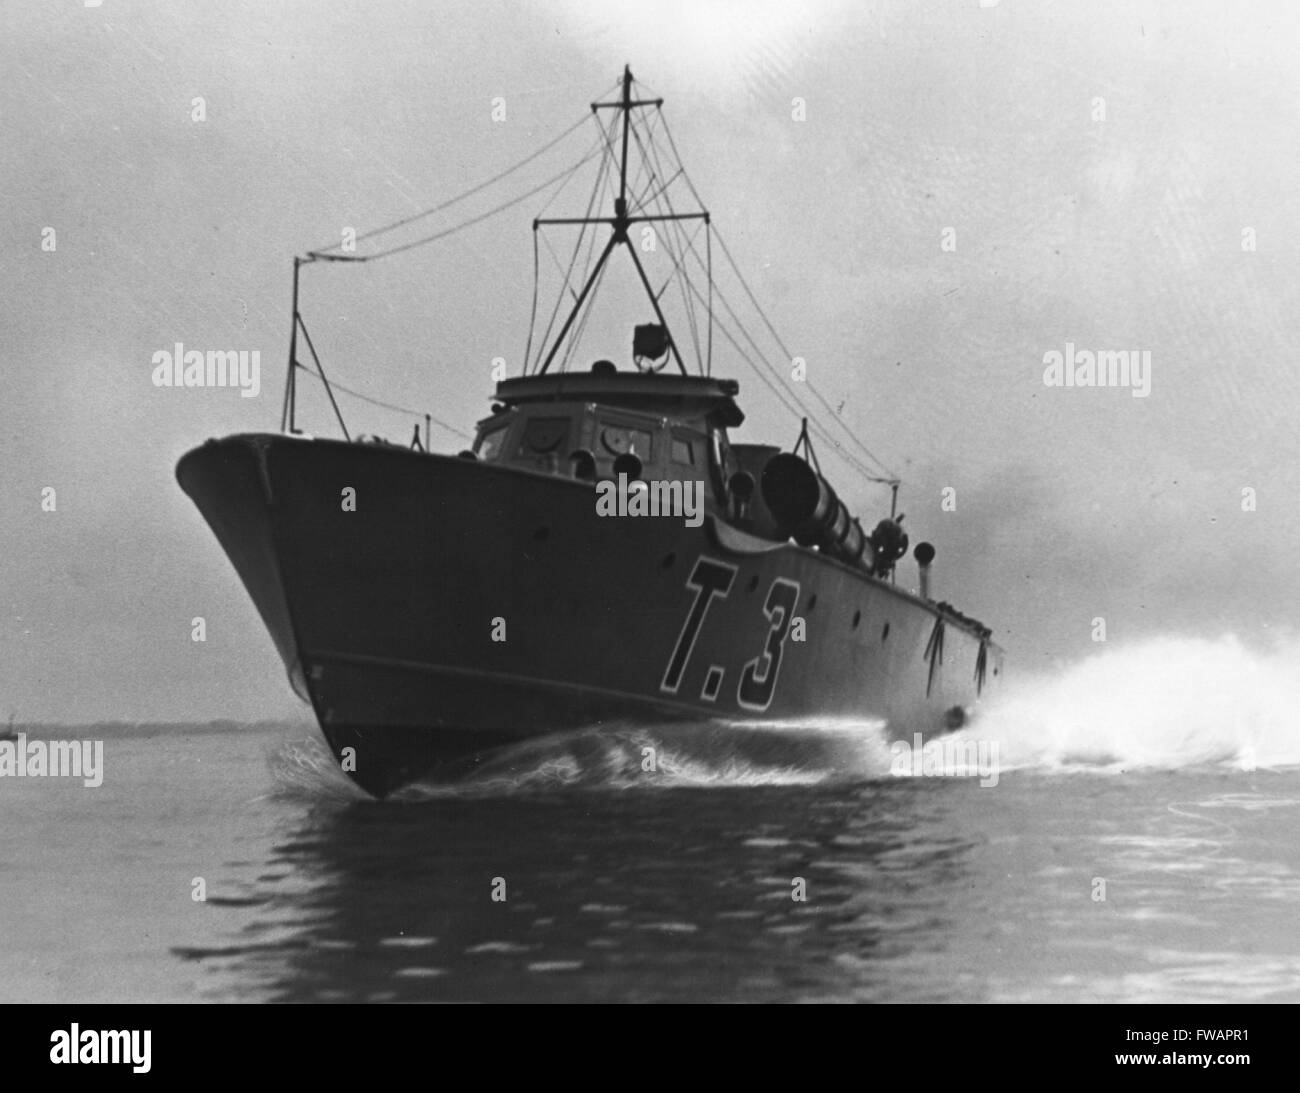 AJAXNETPHOTO. 1939. SOLENT, ENGLAND. - HIGH SPEED SPECIAL - T3 AND A SISTER SHIP T4 BUILT BY VOSPER LTD PORTSMOUTH - Stock Image